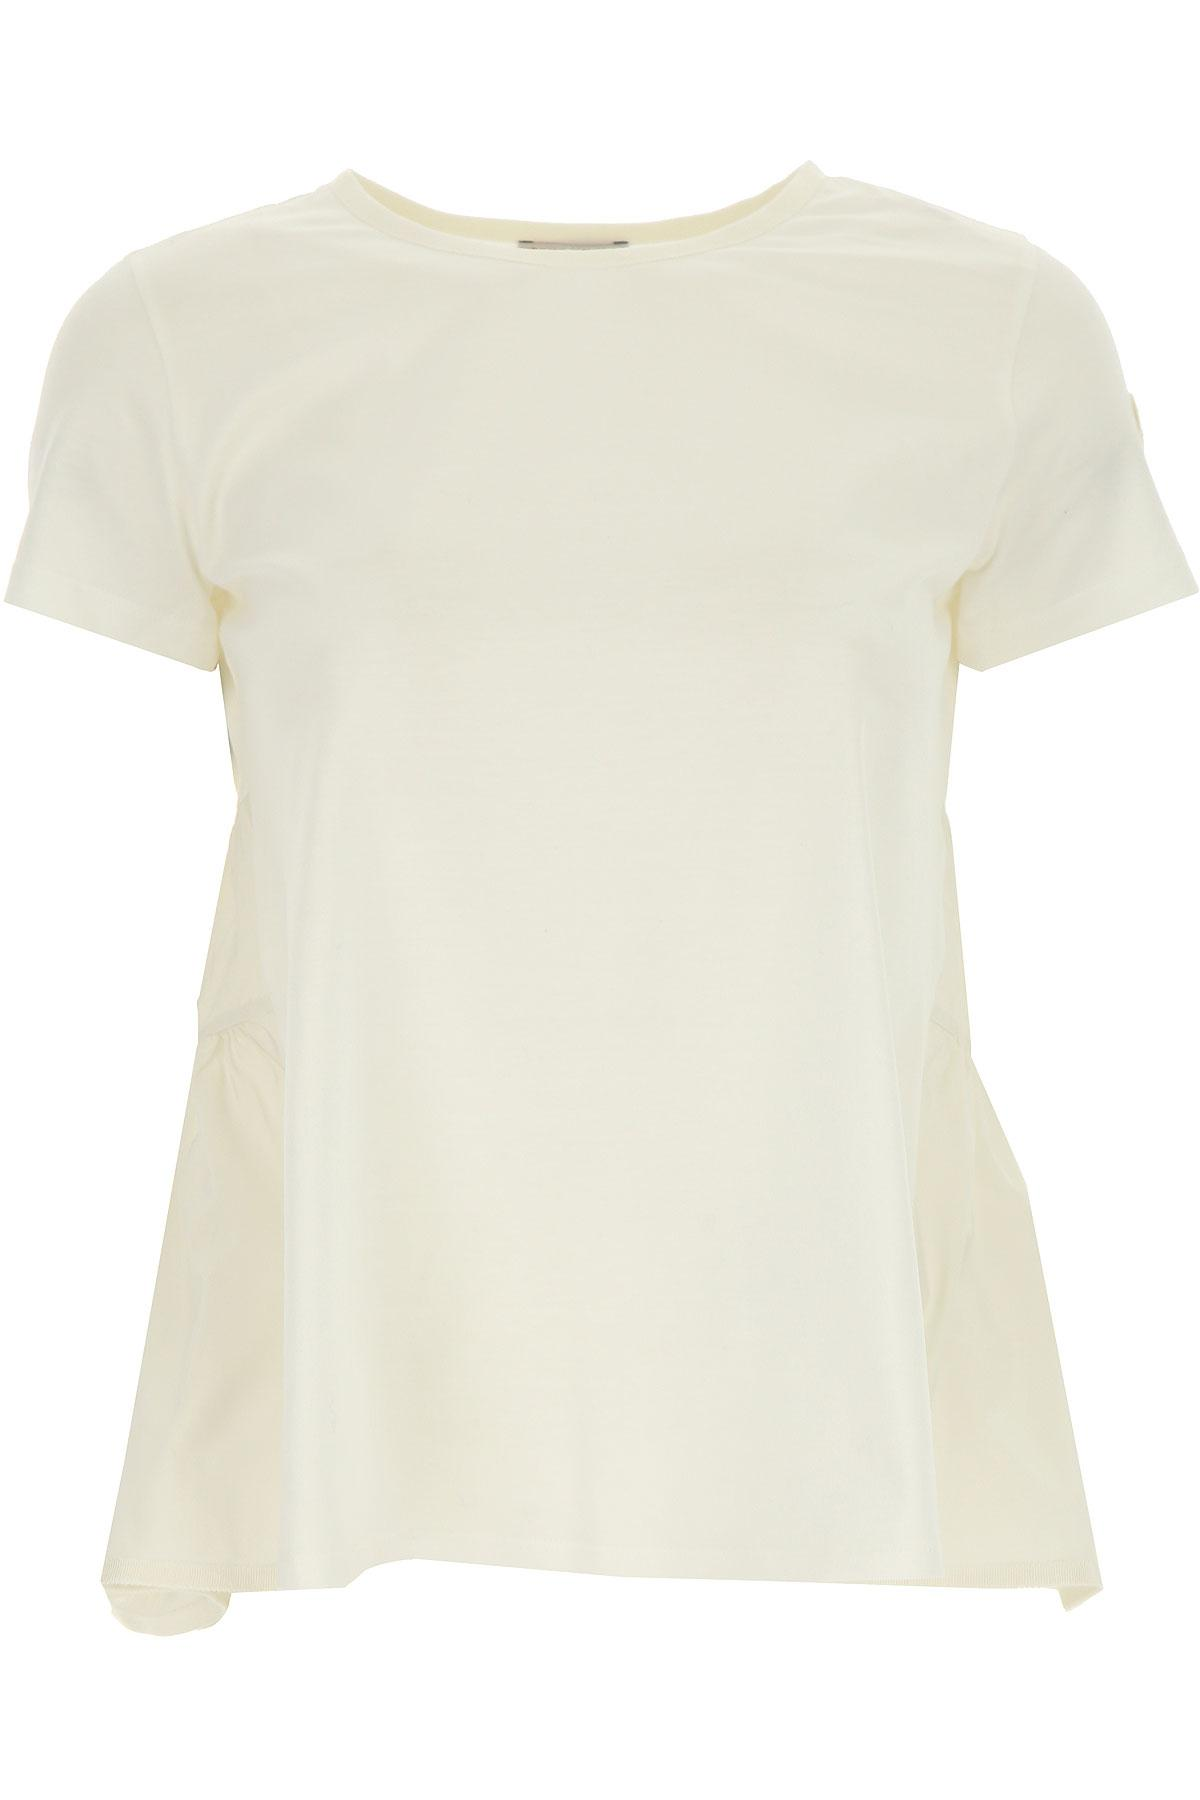 a53d2a6f Lyst - Moncler T-shirt For Women in White